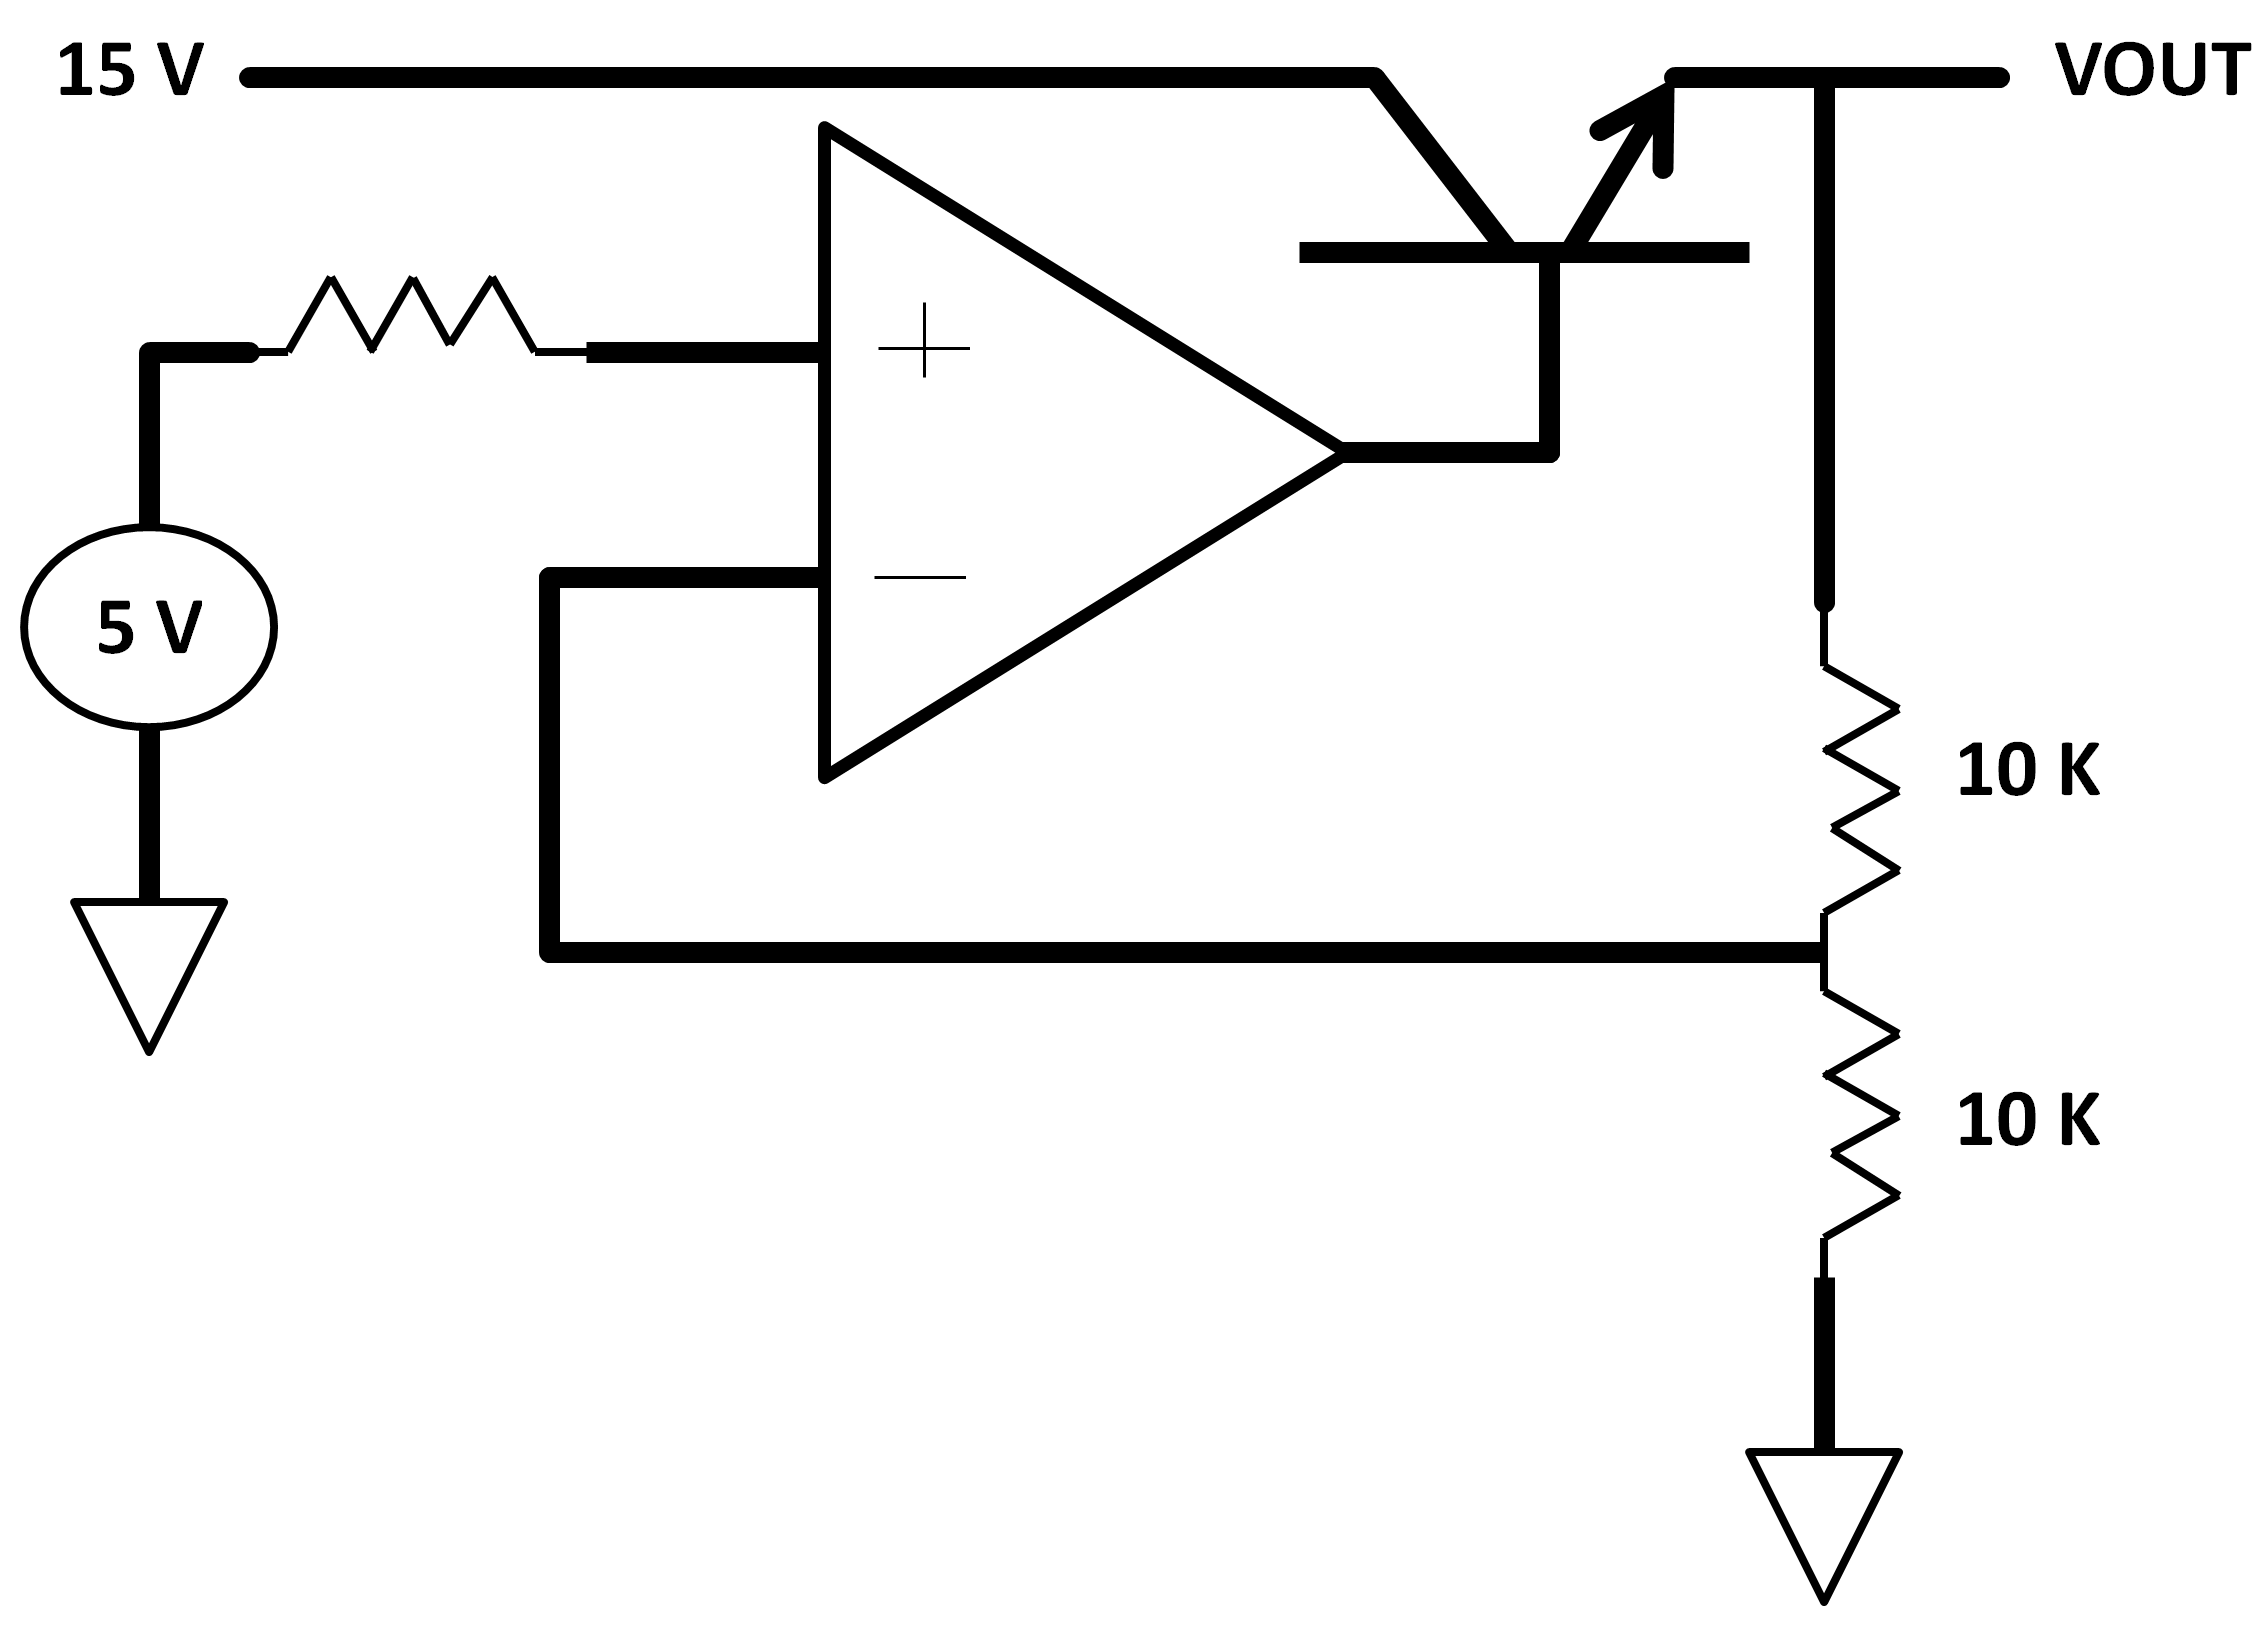 opamp_linear_regulator_example.png